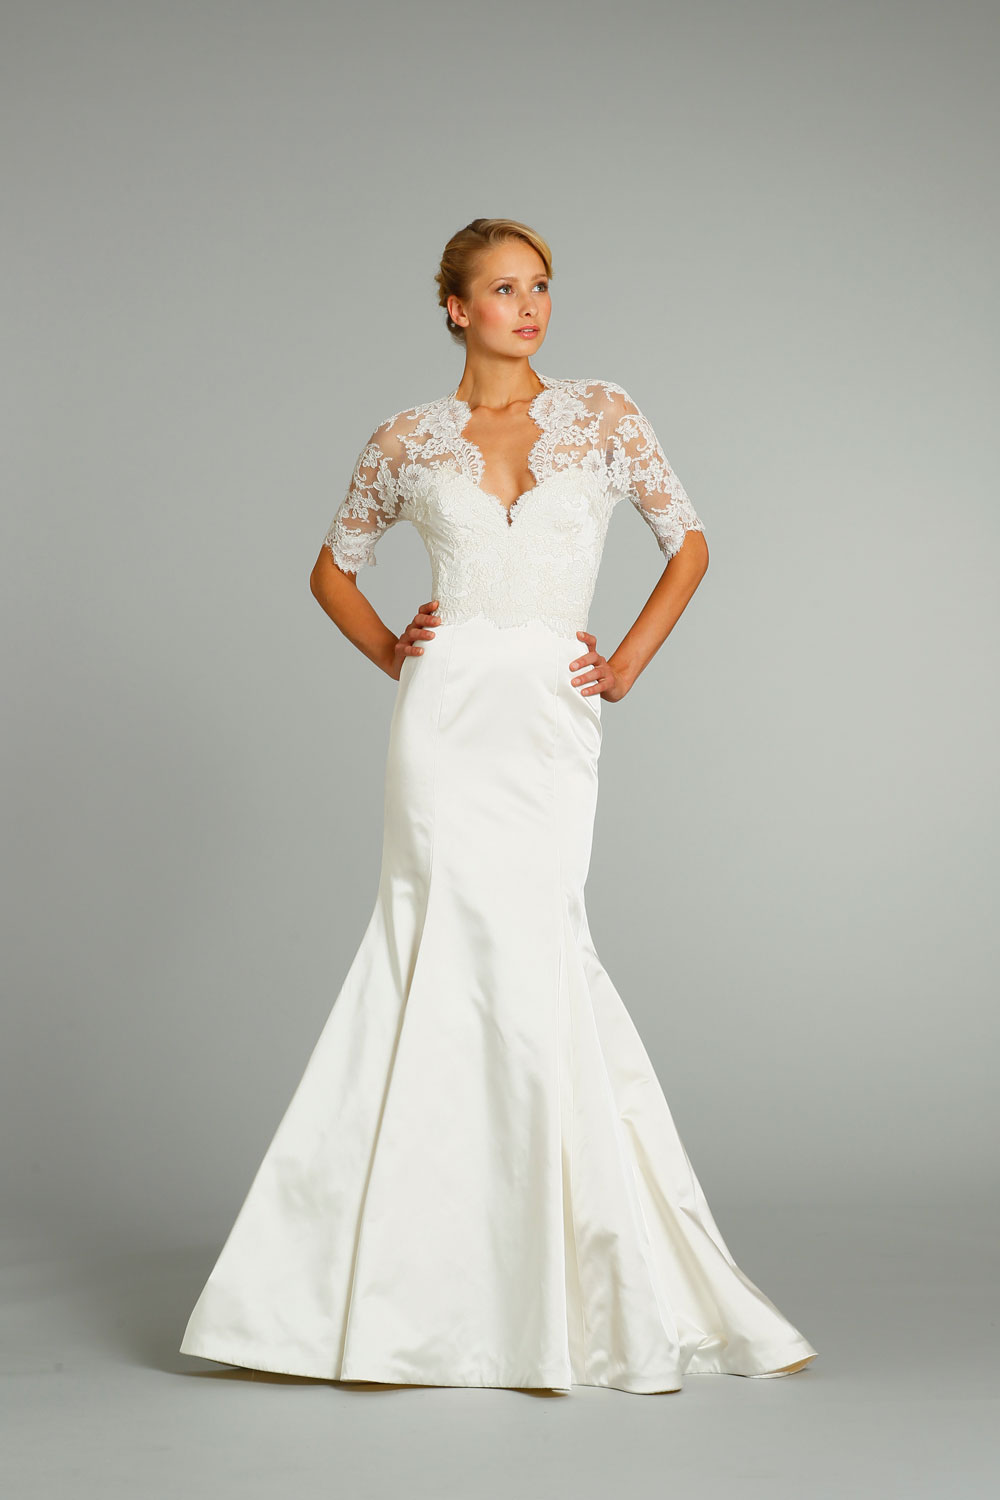 Fall 2012 wedding dress jim hjelm bridal gowns 8256 for Jim hjelm wedding dresses